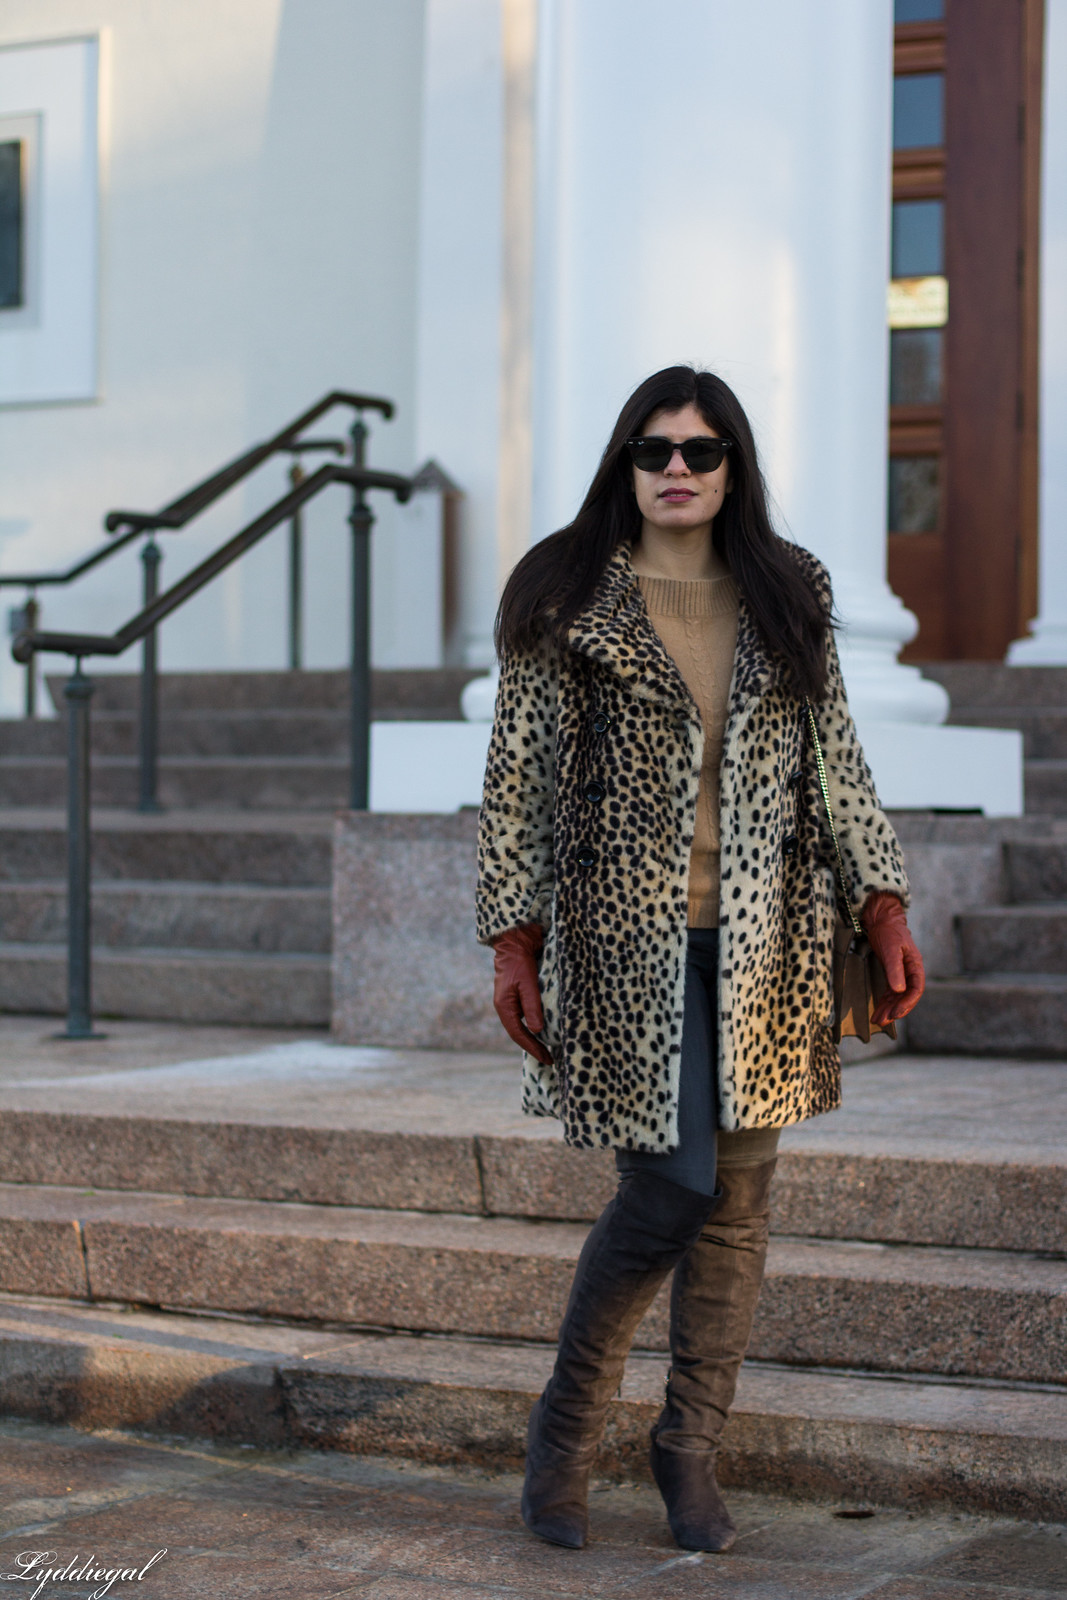 leopard fur coat, grey jeans, over the knee boots, camel sweater, winter outfit.jpg